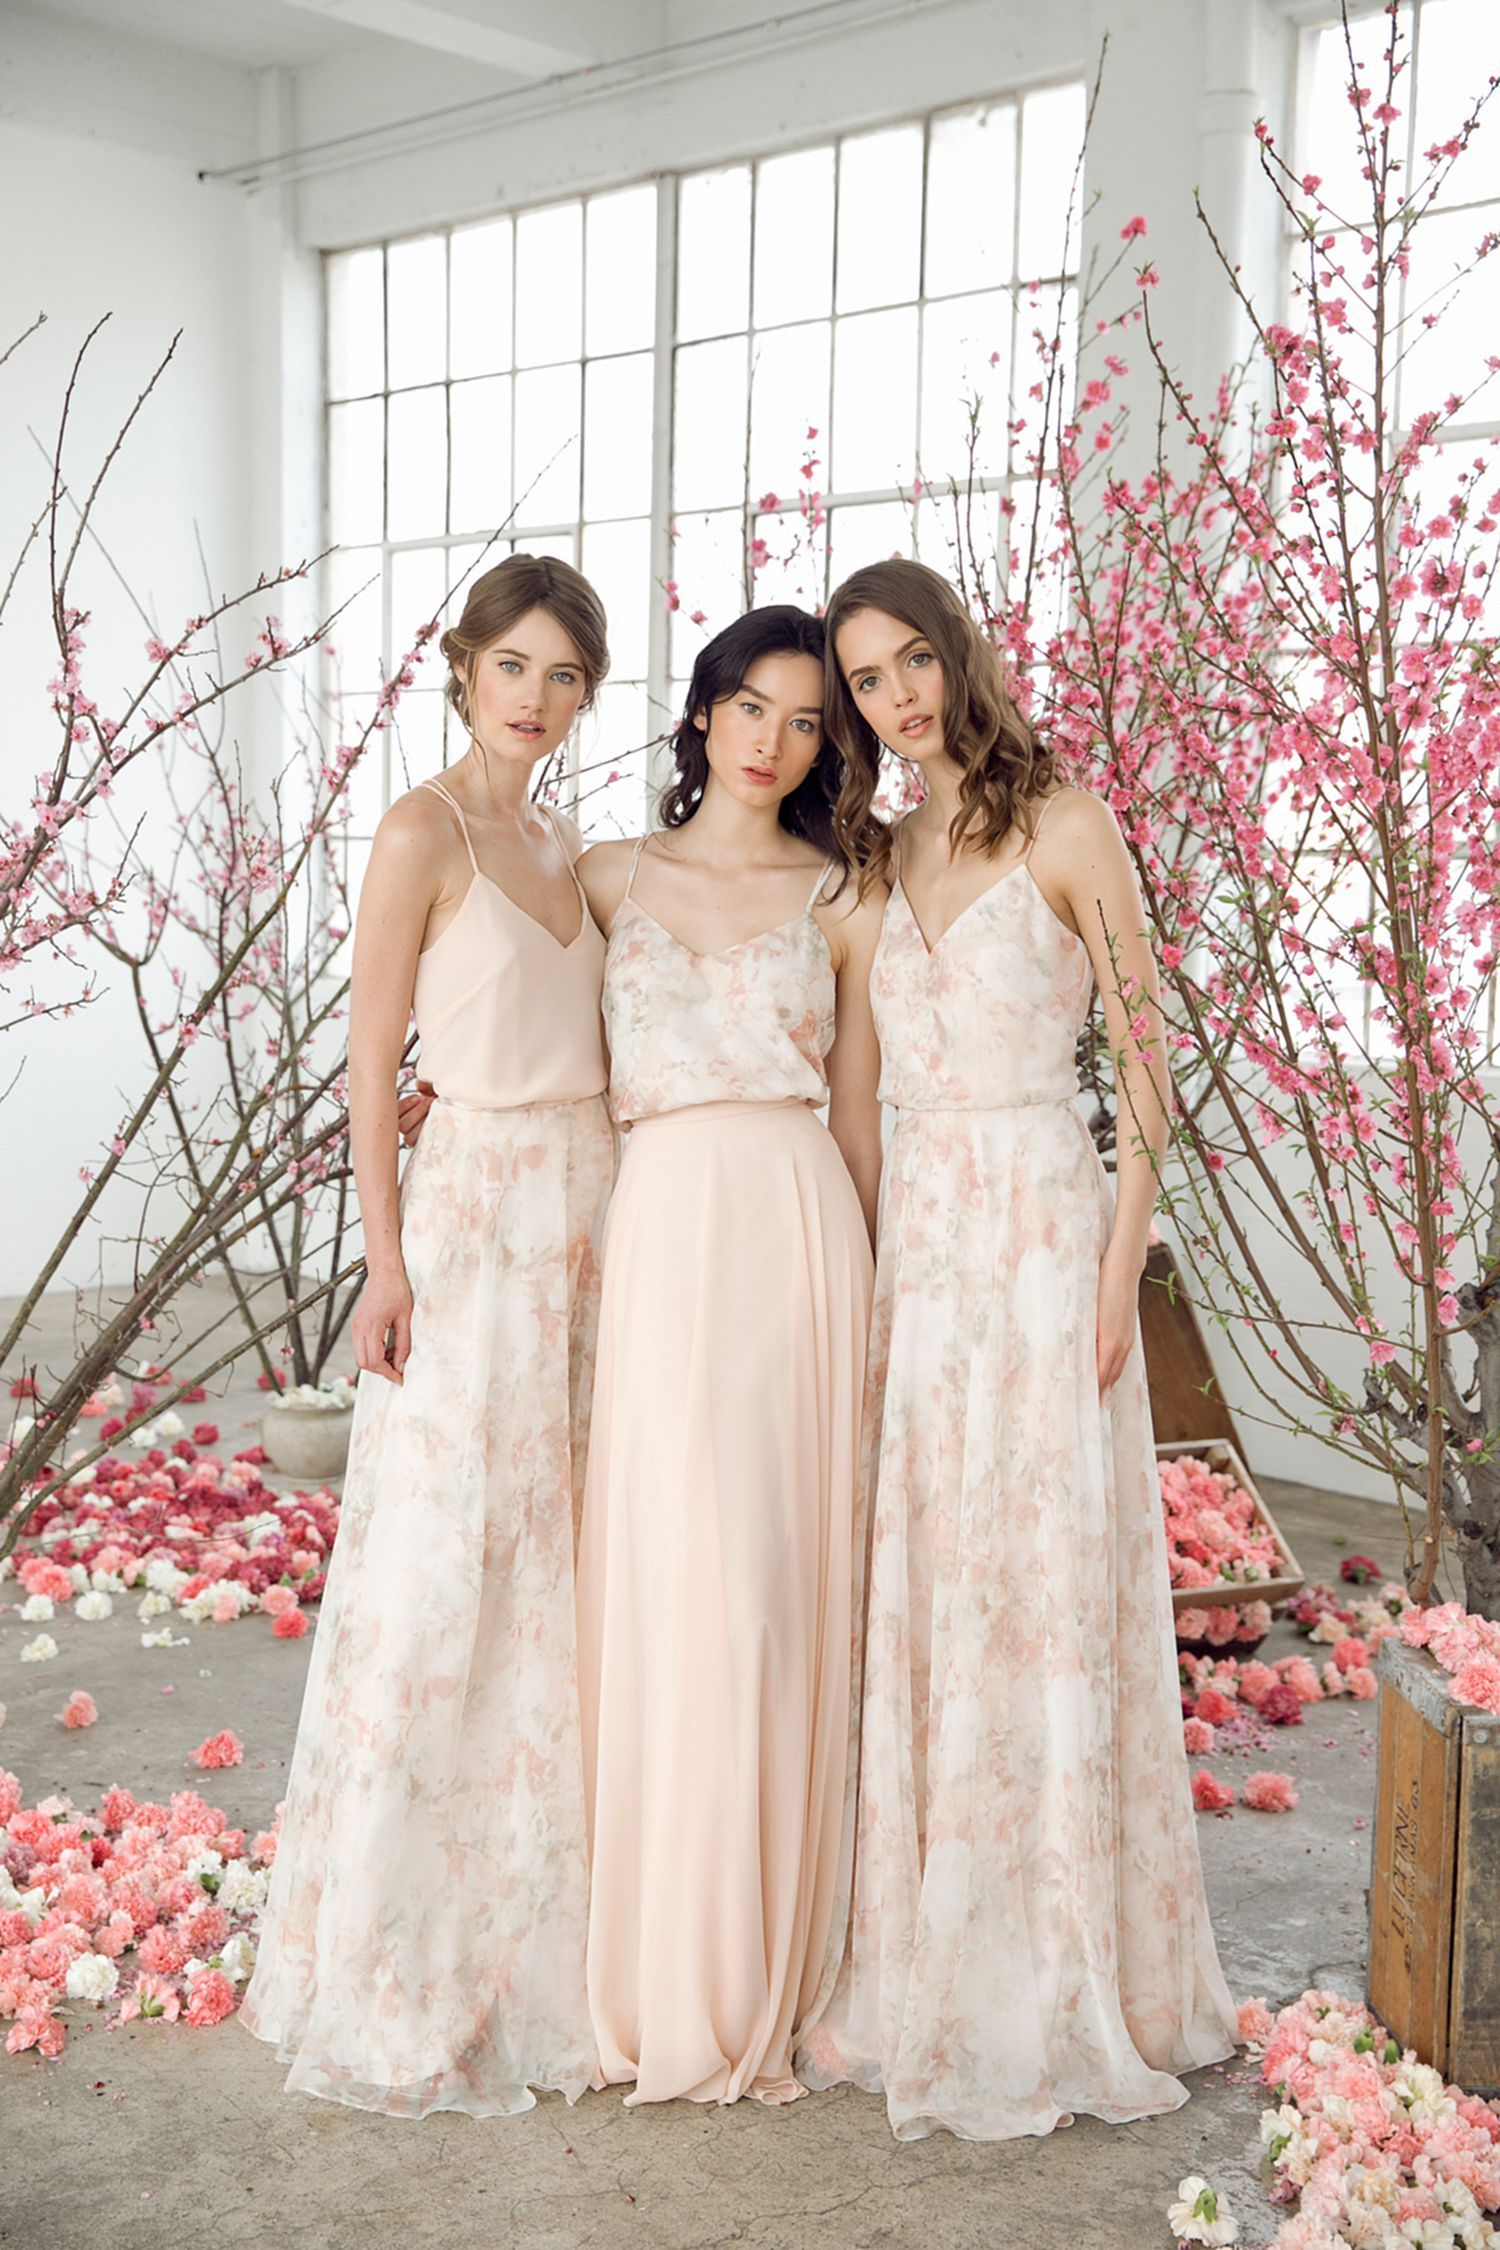 e96ad1d04101 10 Awesome Guest Summer Wedding Outfit Ideas   Wedding   Bridesmaid ...